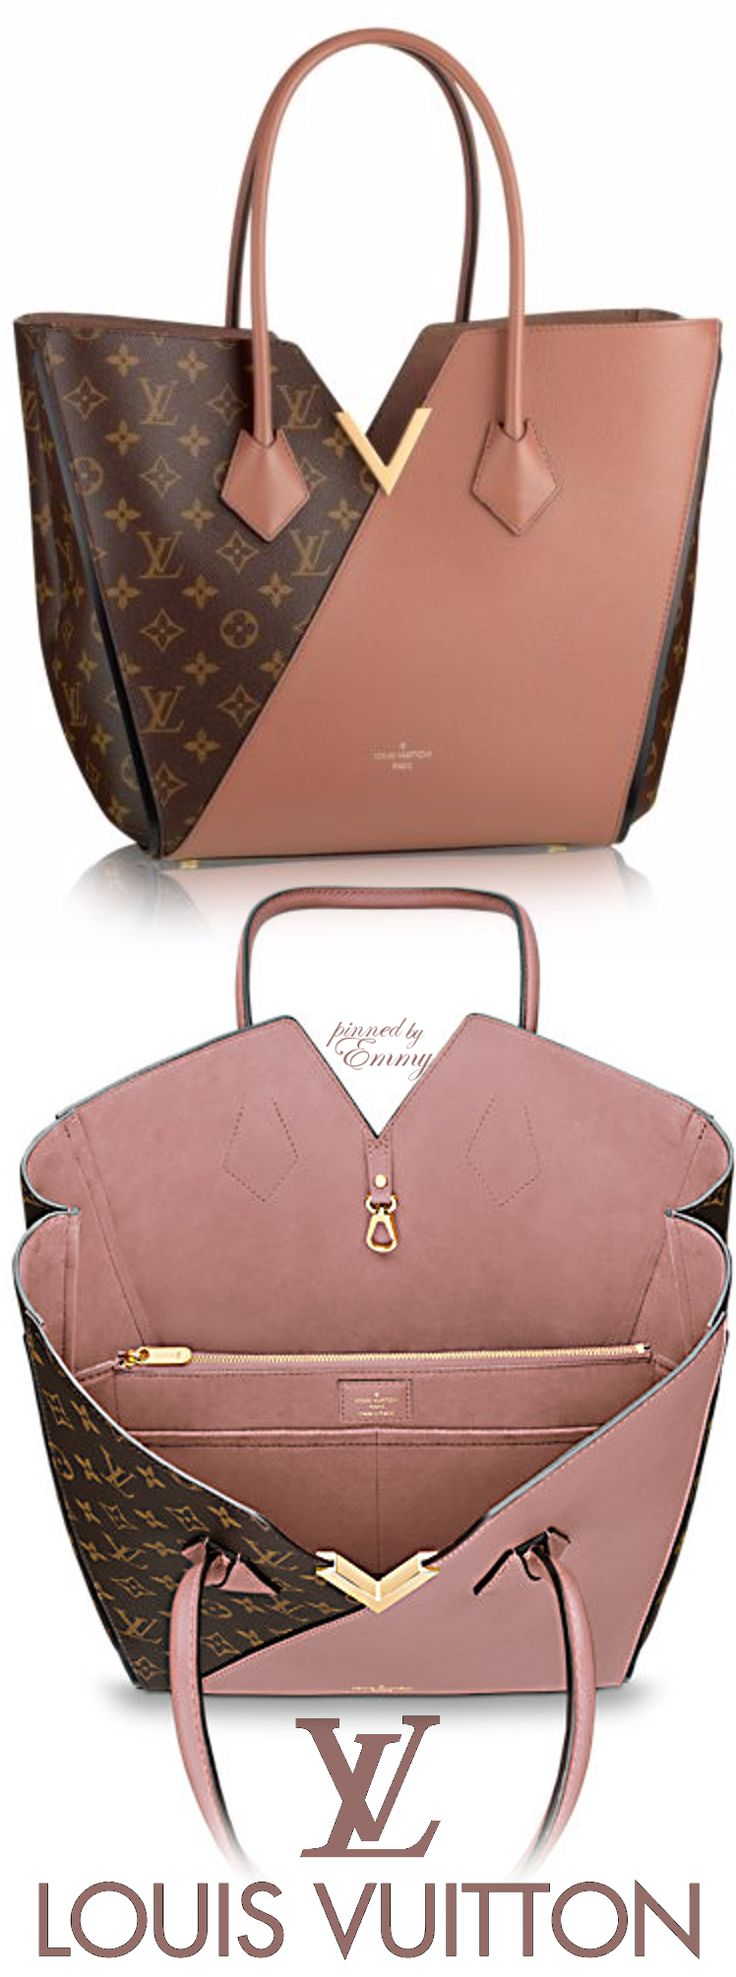 An LV bag I actually like - Louis Vuitton 'Kimono' #bag #pink